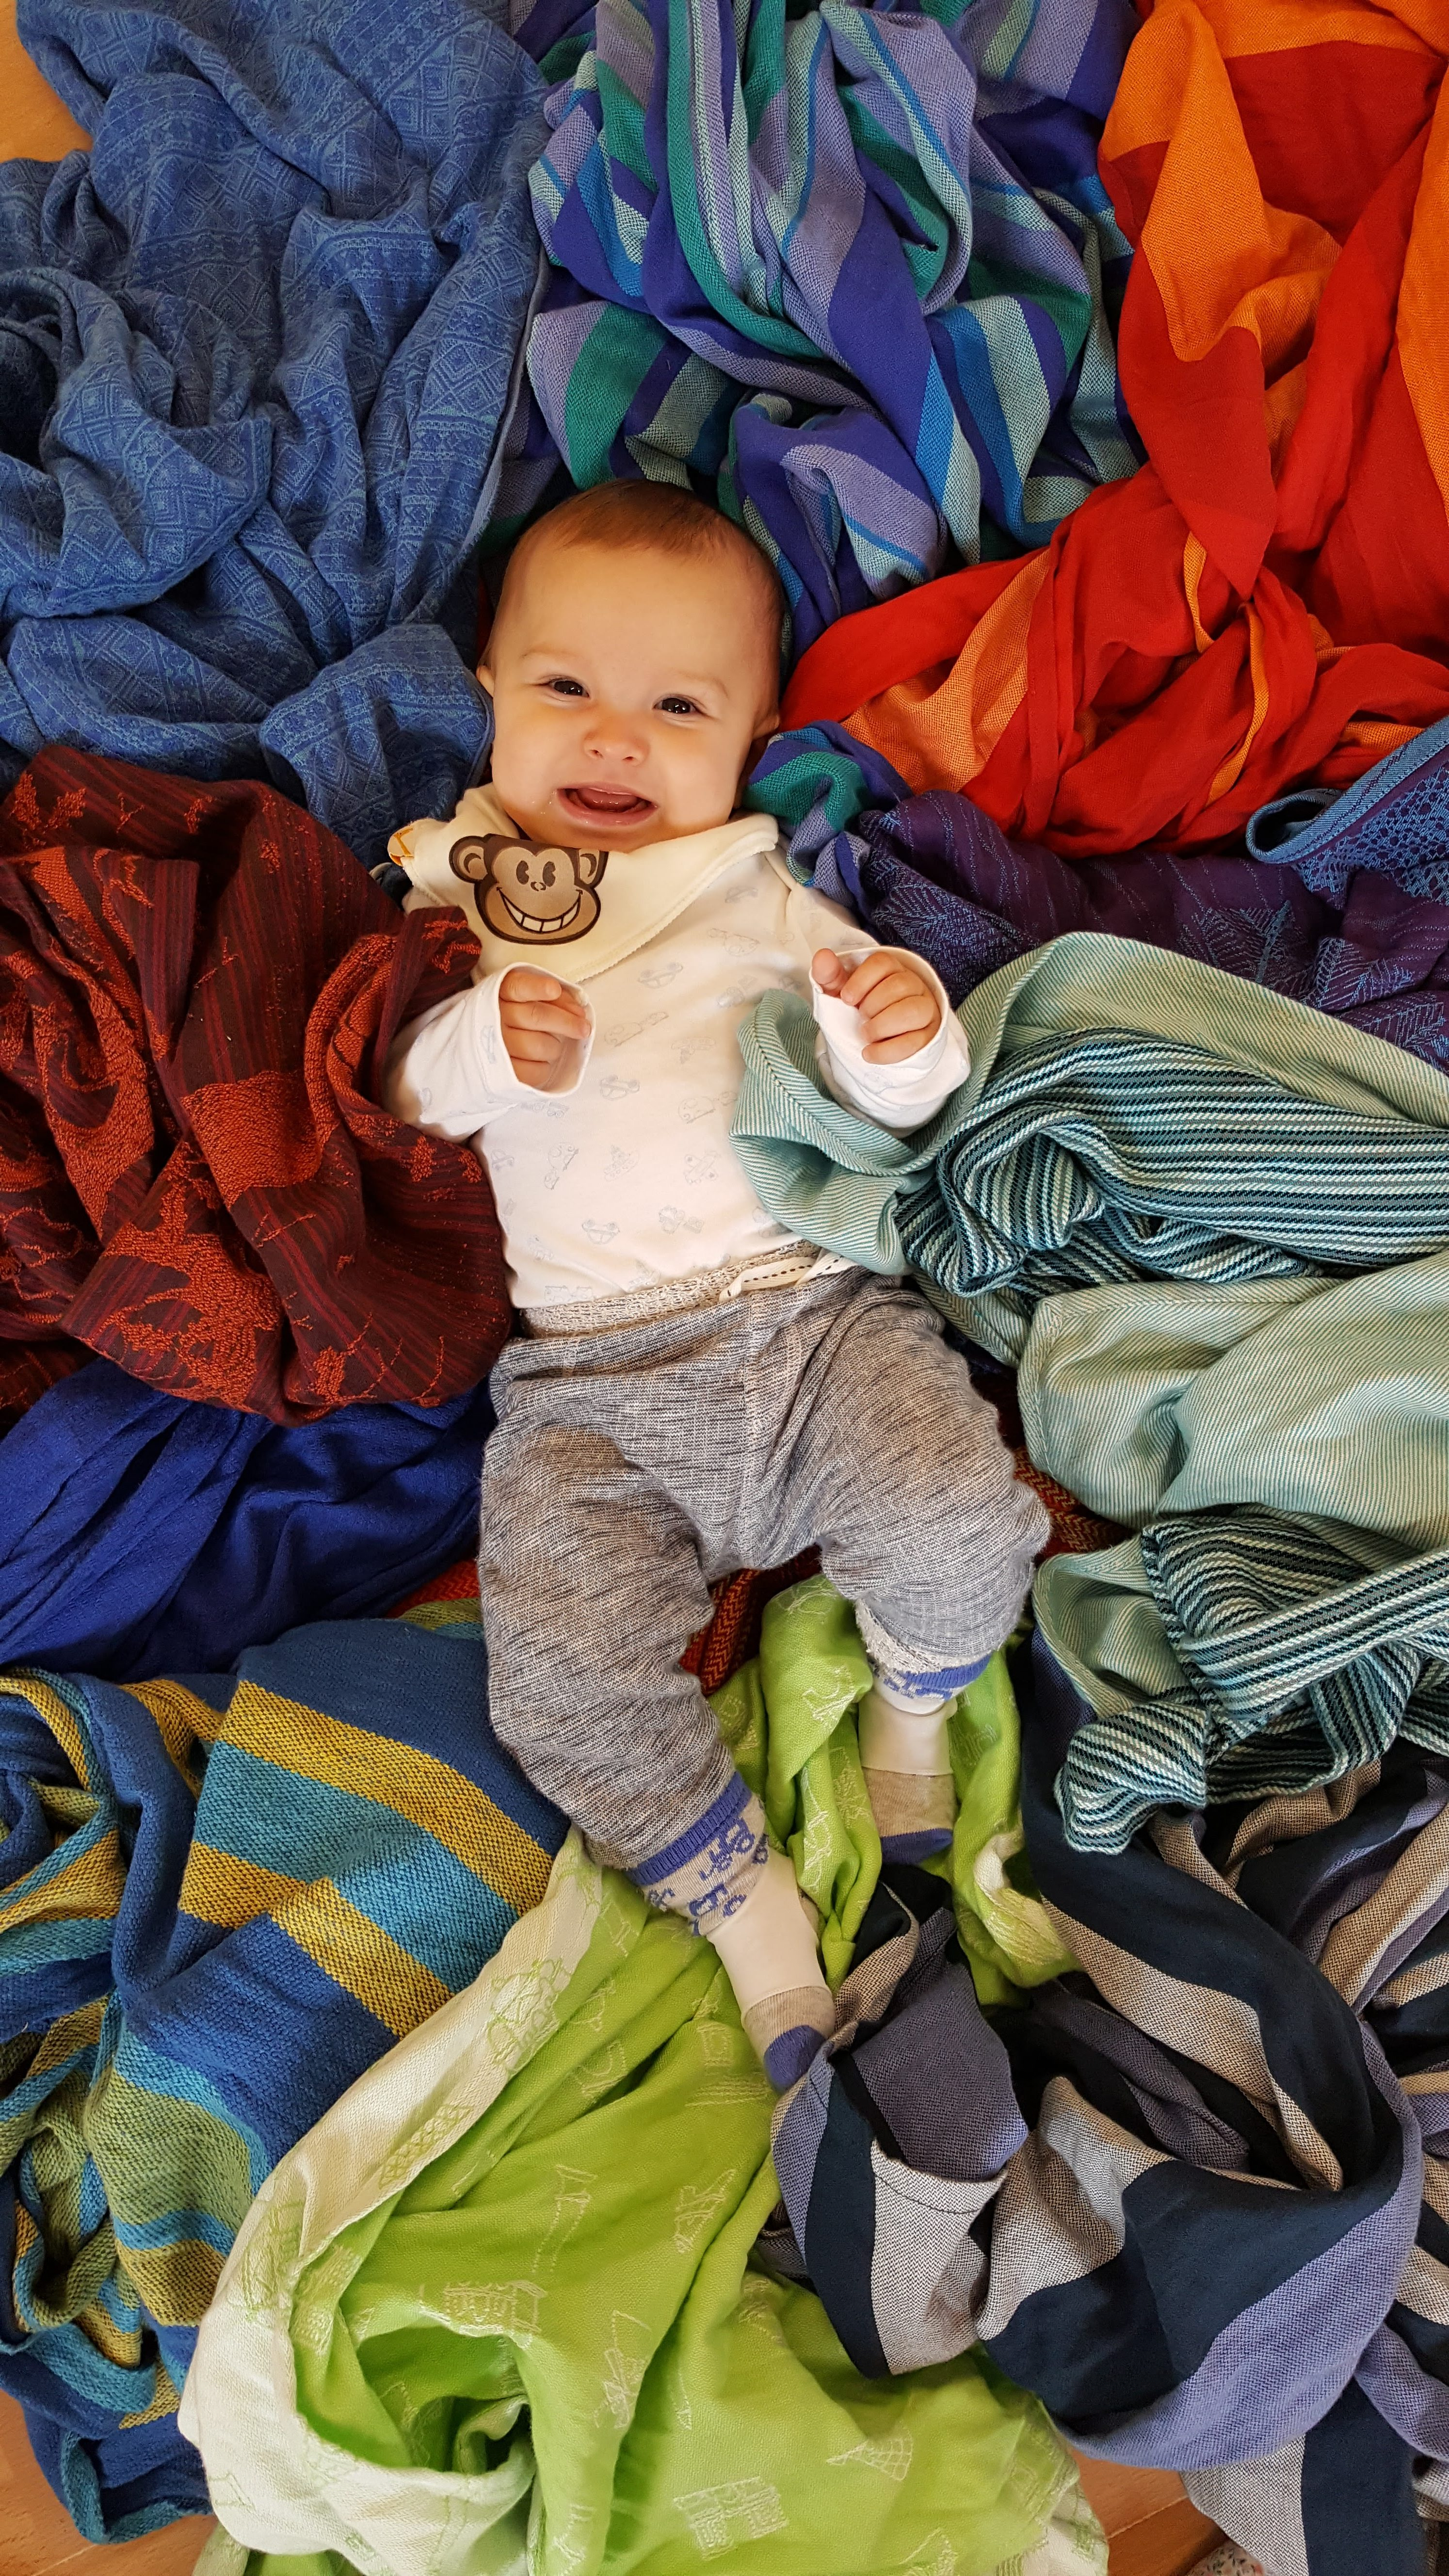 white baby aged 5 months, smiling on a pile of woven wraps